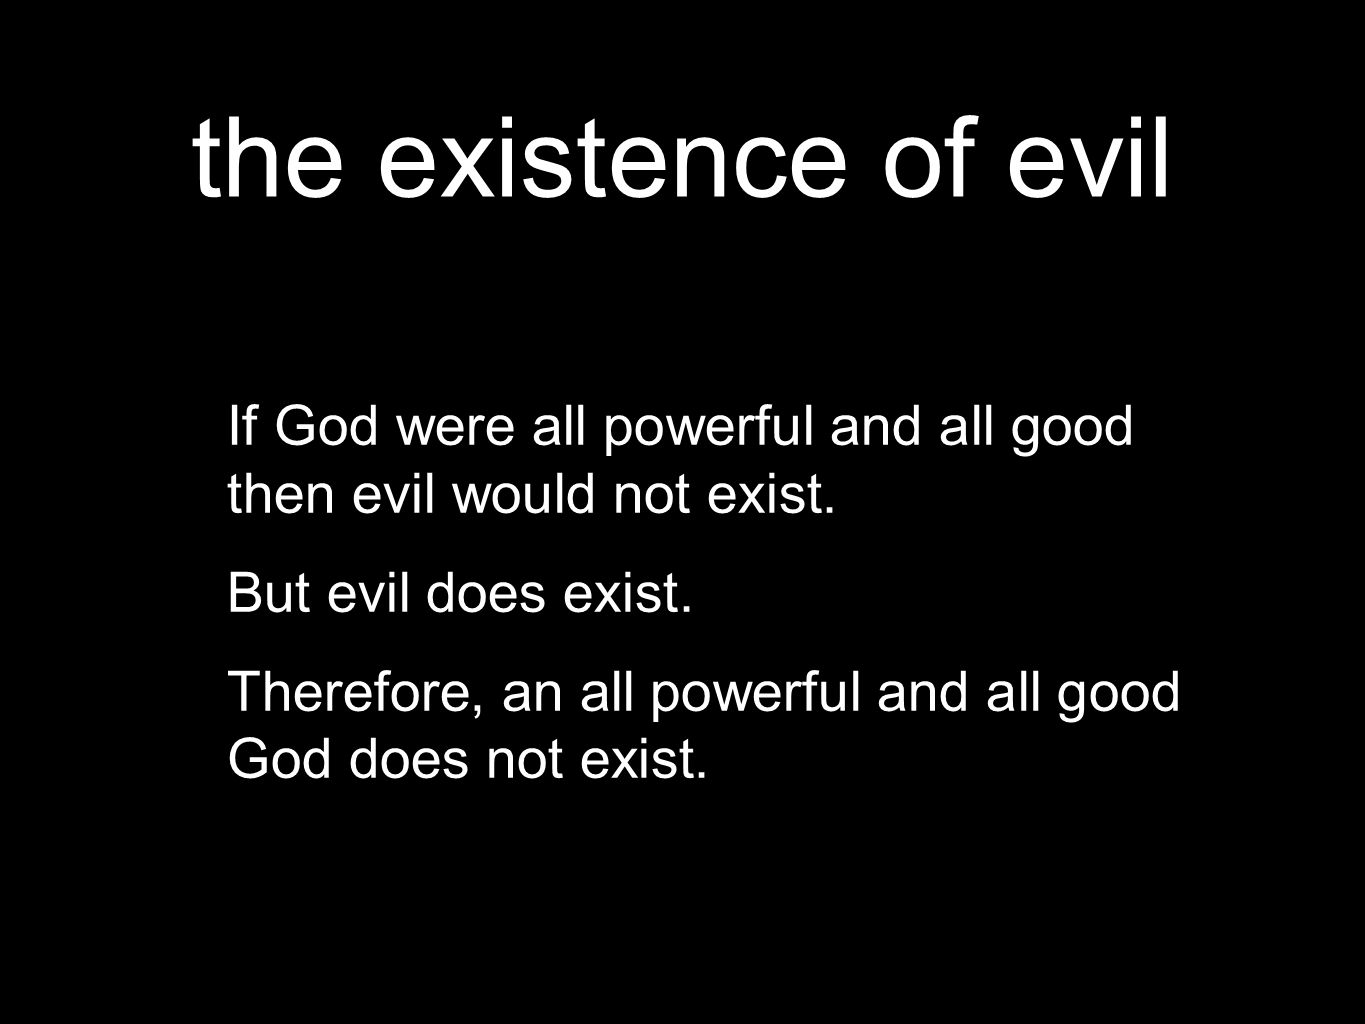 the existence of evil If God were all powerful and all good then evil would not exist.